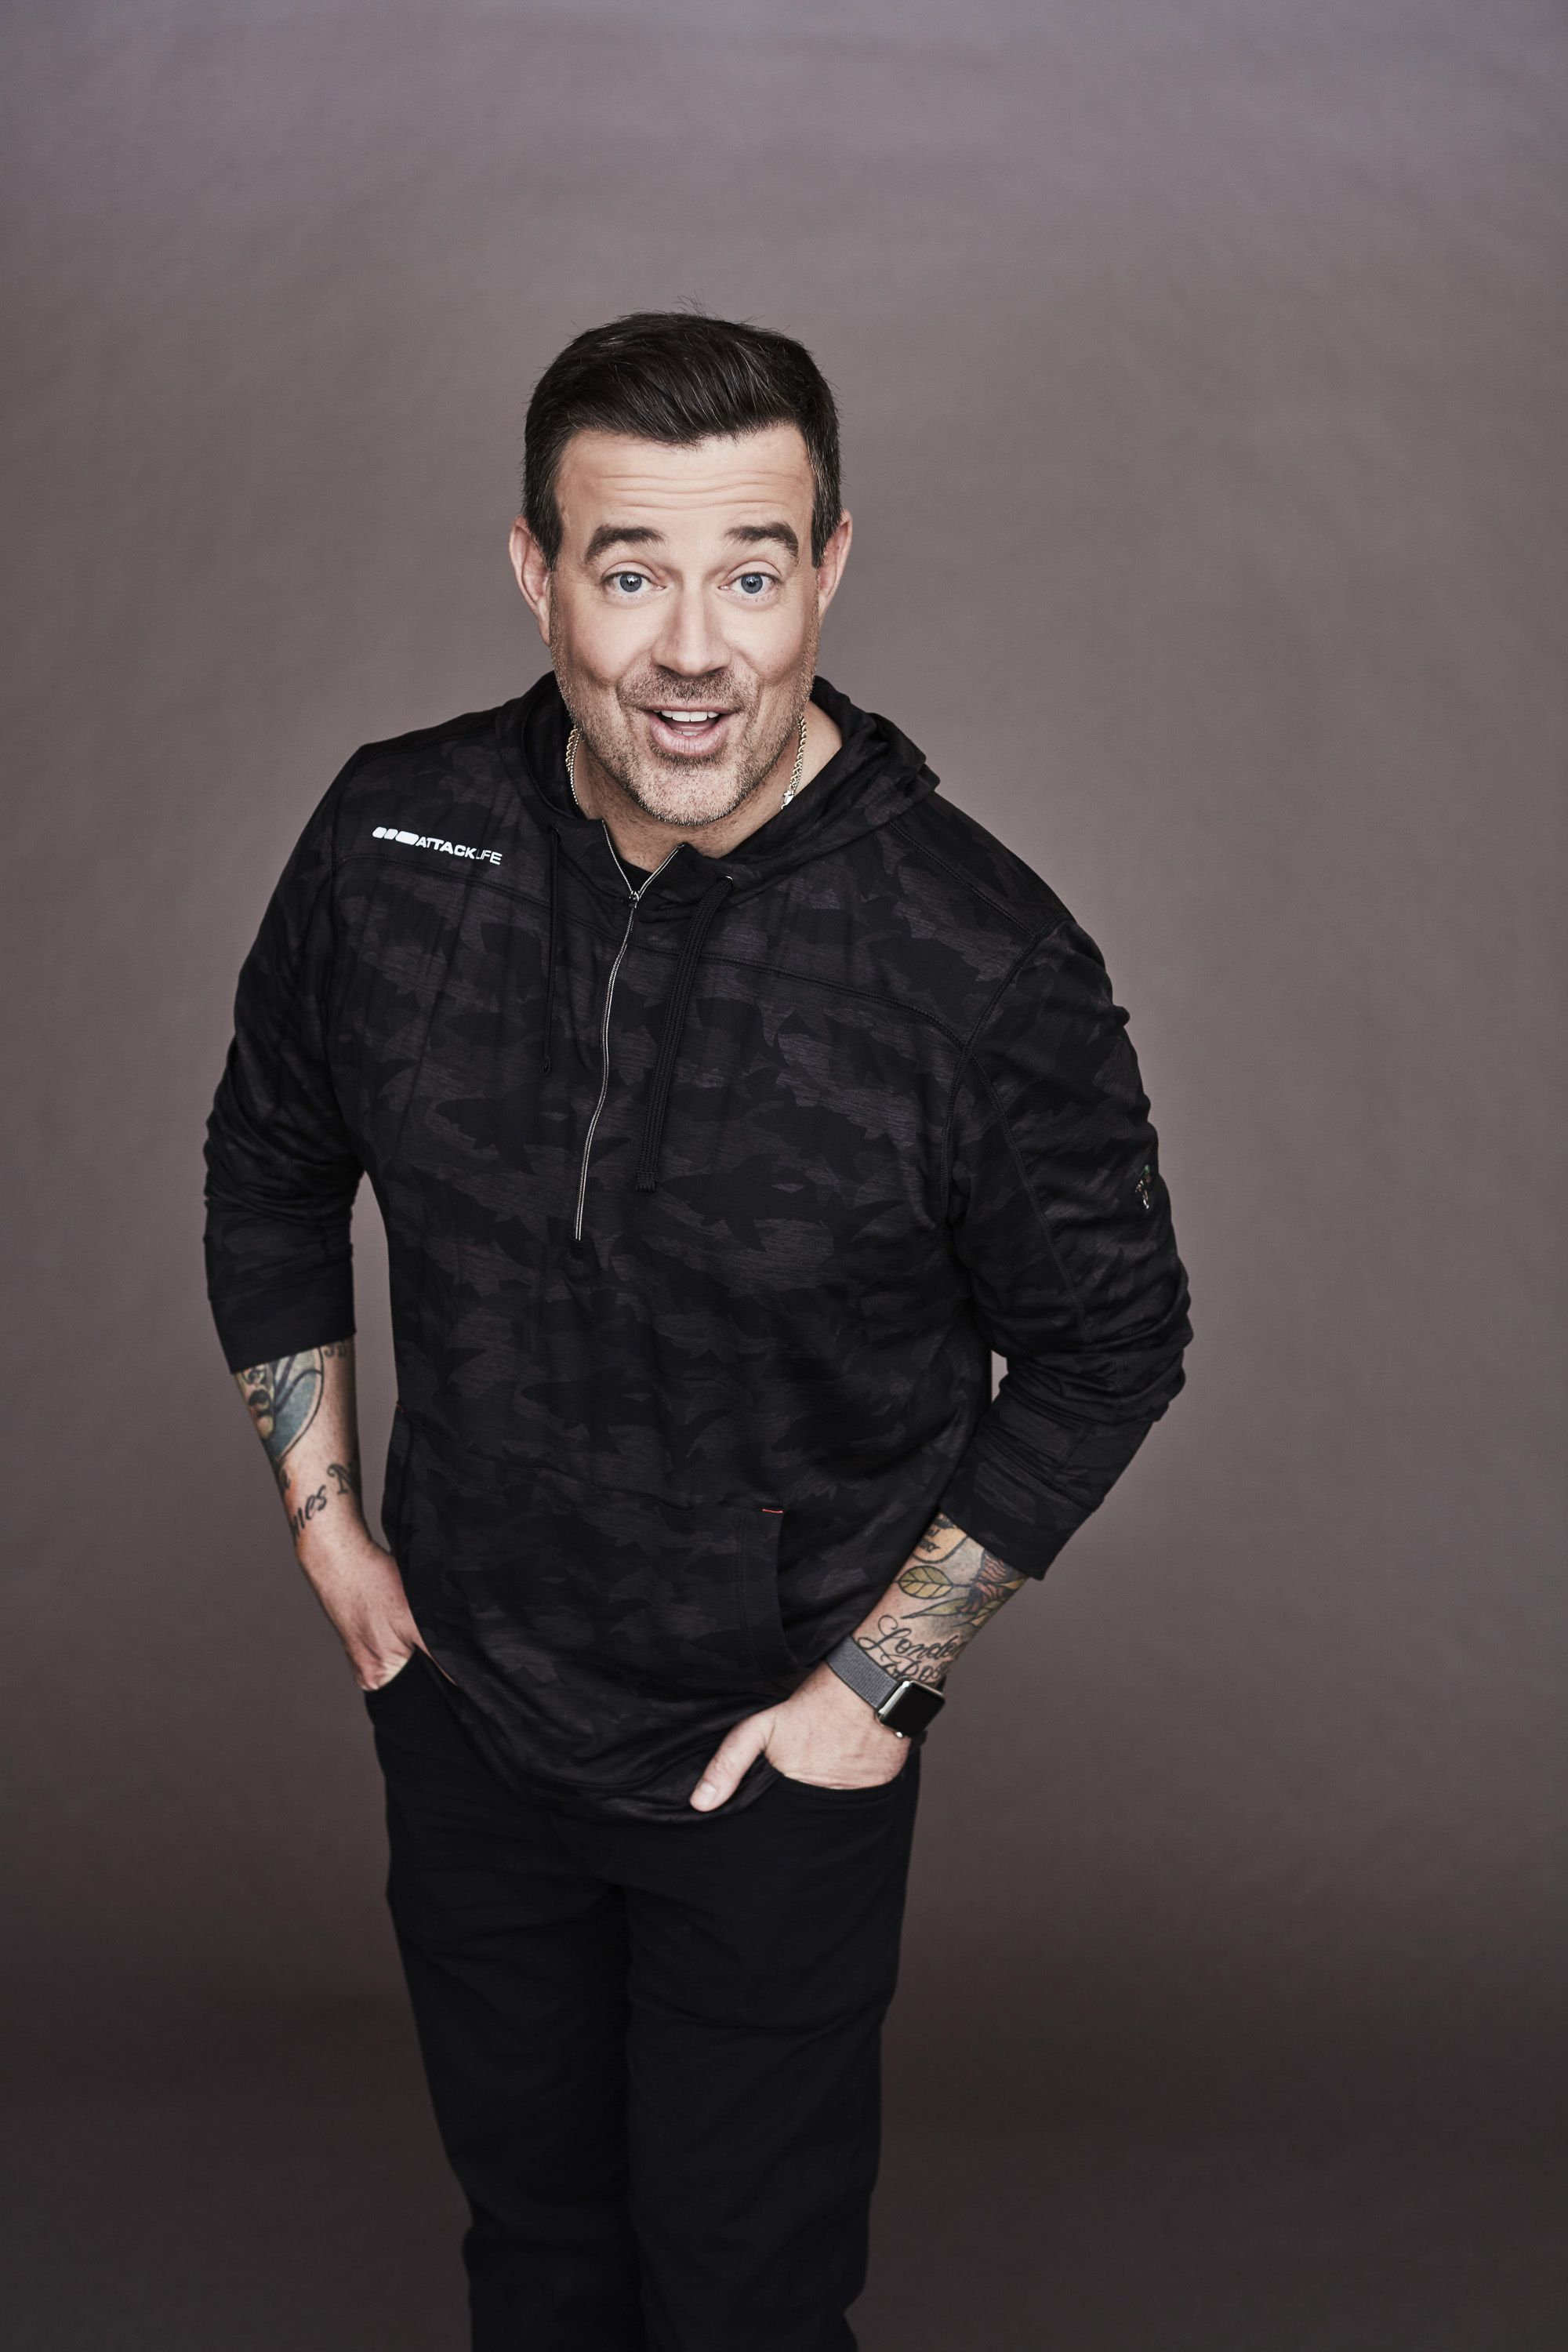 Carson Daly Bio, Age, Height, Parents, Sister, Wife, Kids